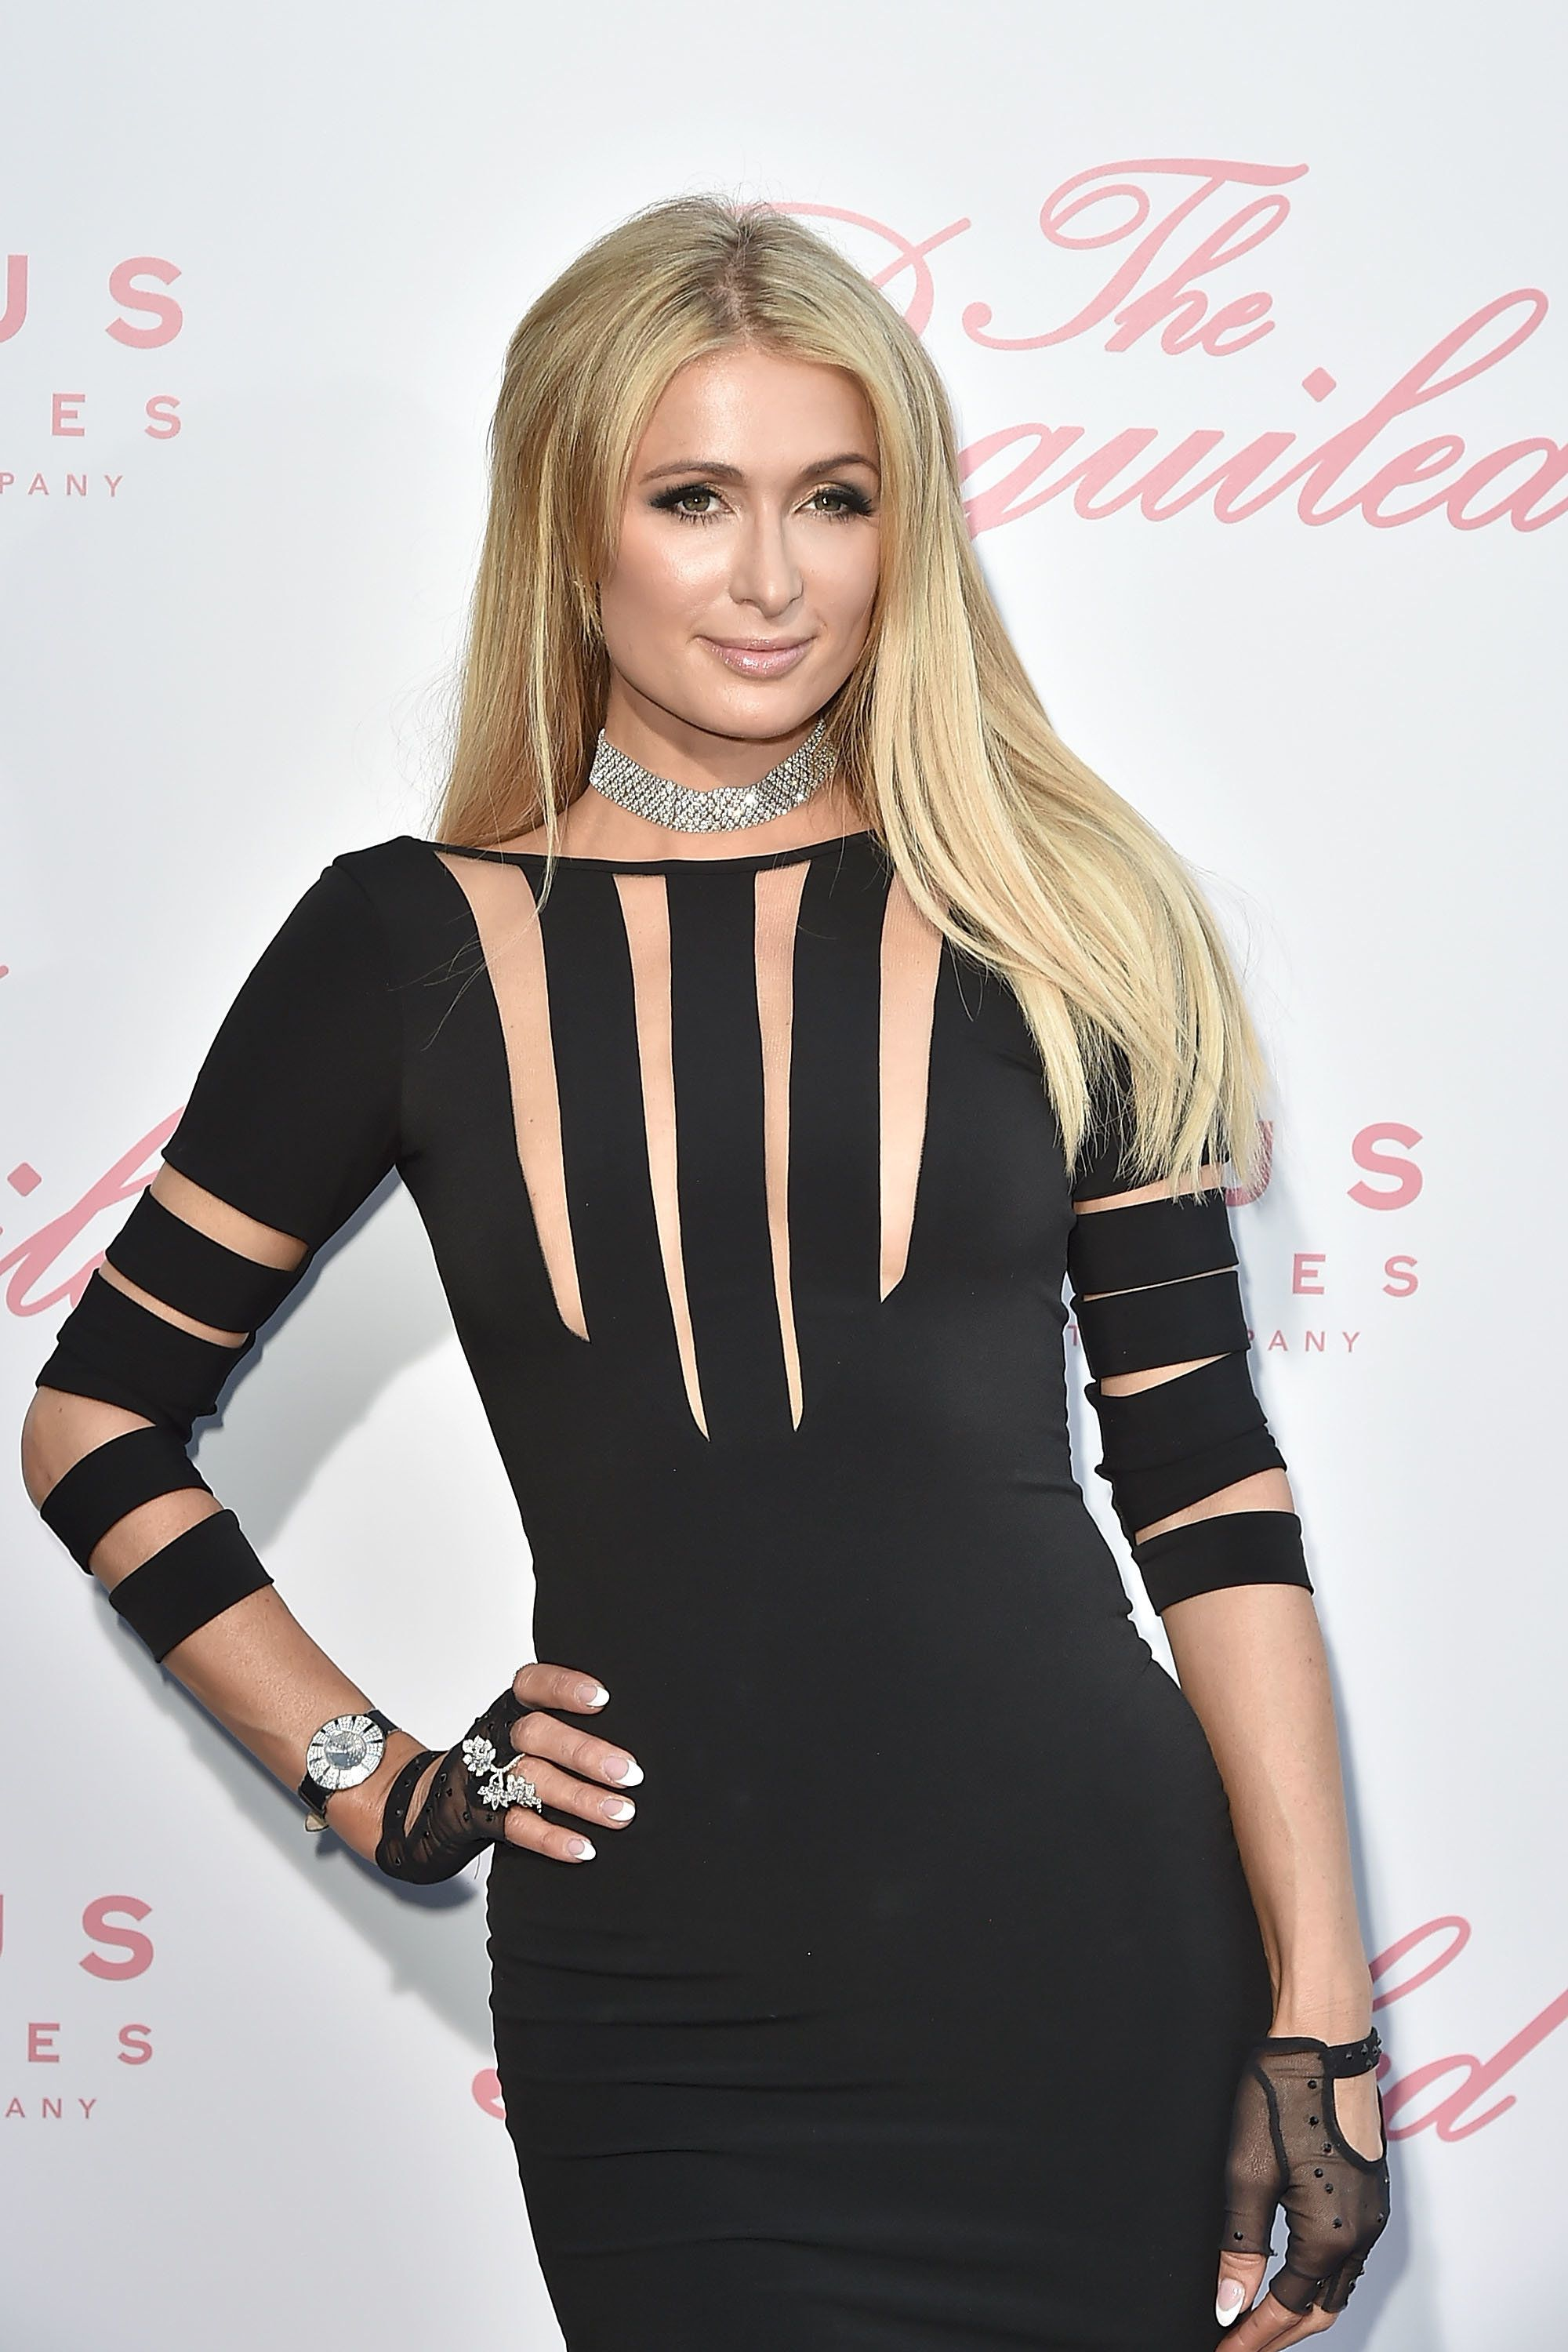 LOS ANGELES, CA - JUNE 12:  Paris Hilton attends the U.S. Premiere Of 'The Beguiled' - Arrivals at Directors Guild Of America on June 12, 2017 in Los Angeles, California.  (Photo by David Crotty/Patrick McMullan via Getty Images)